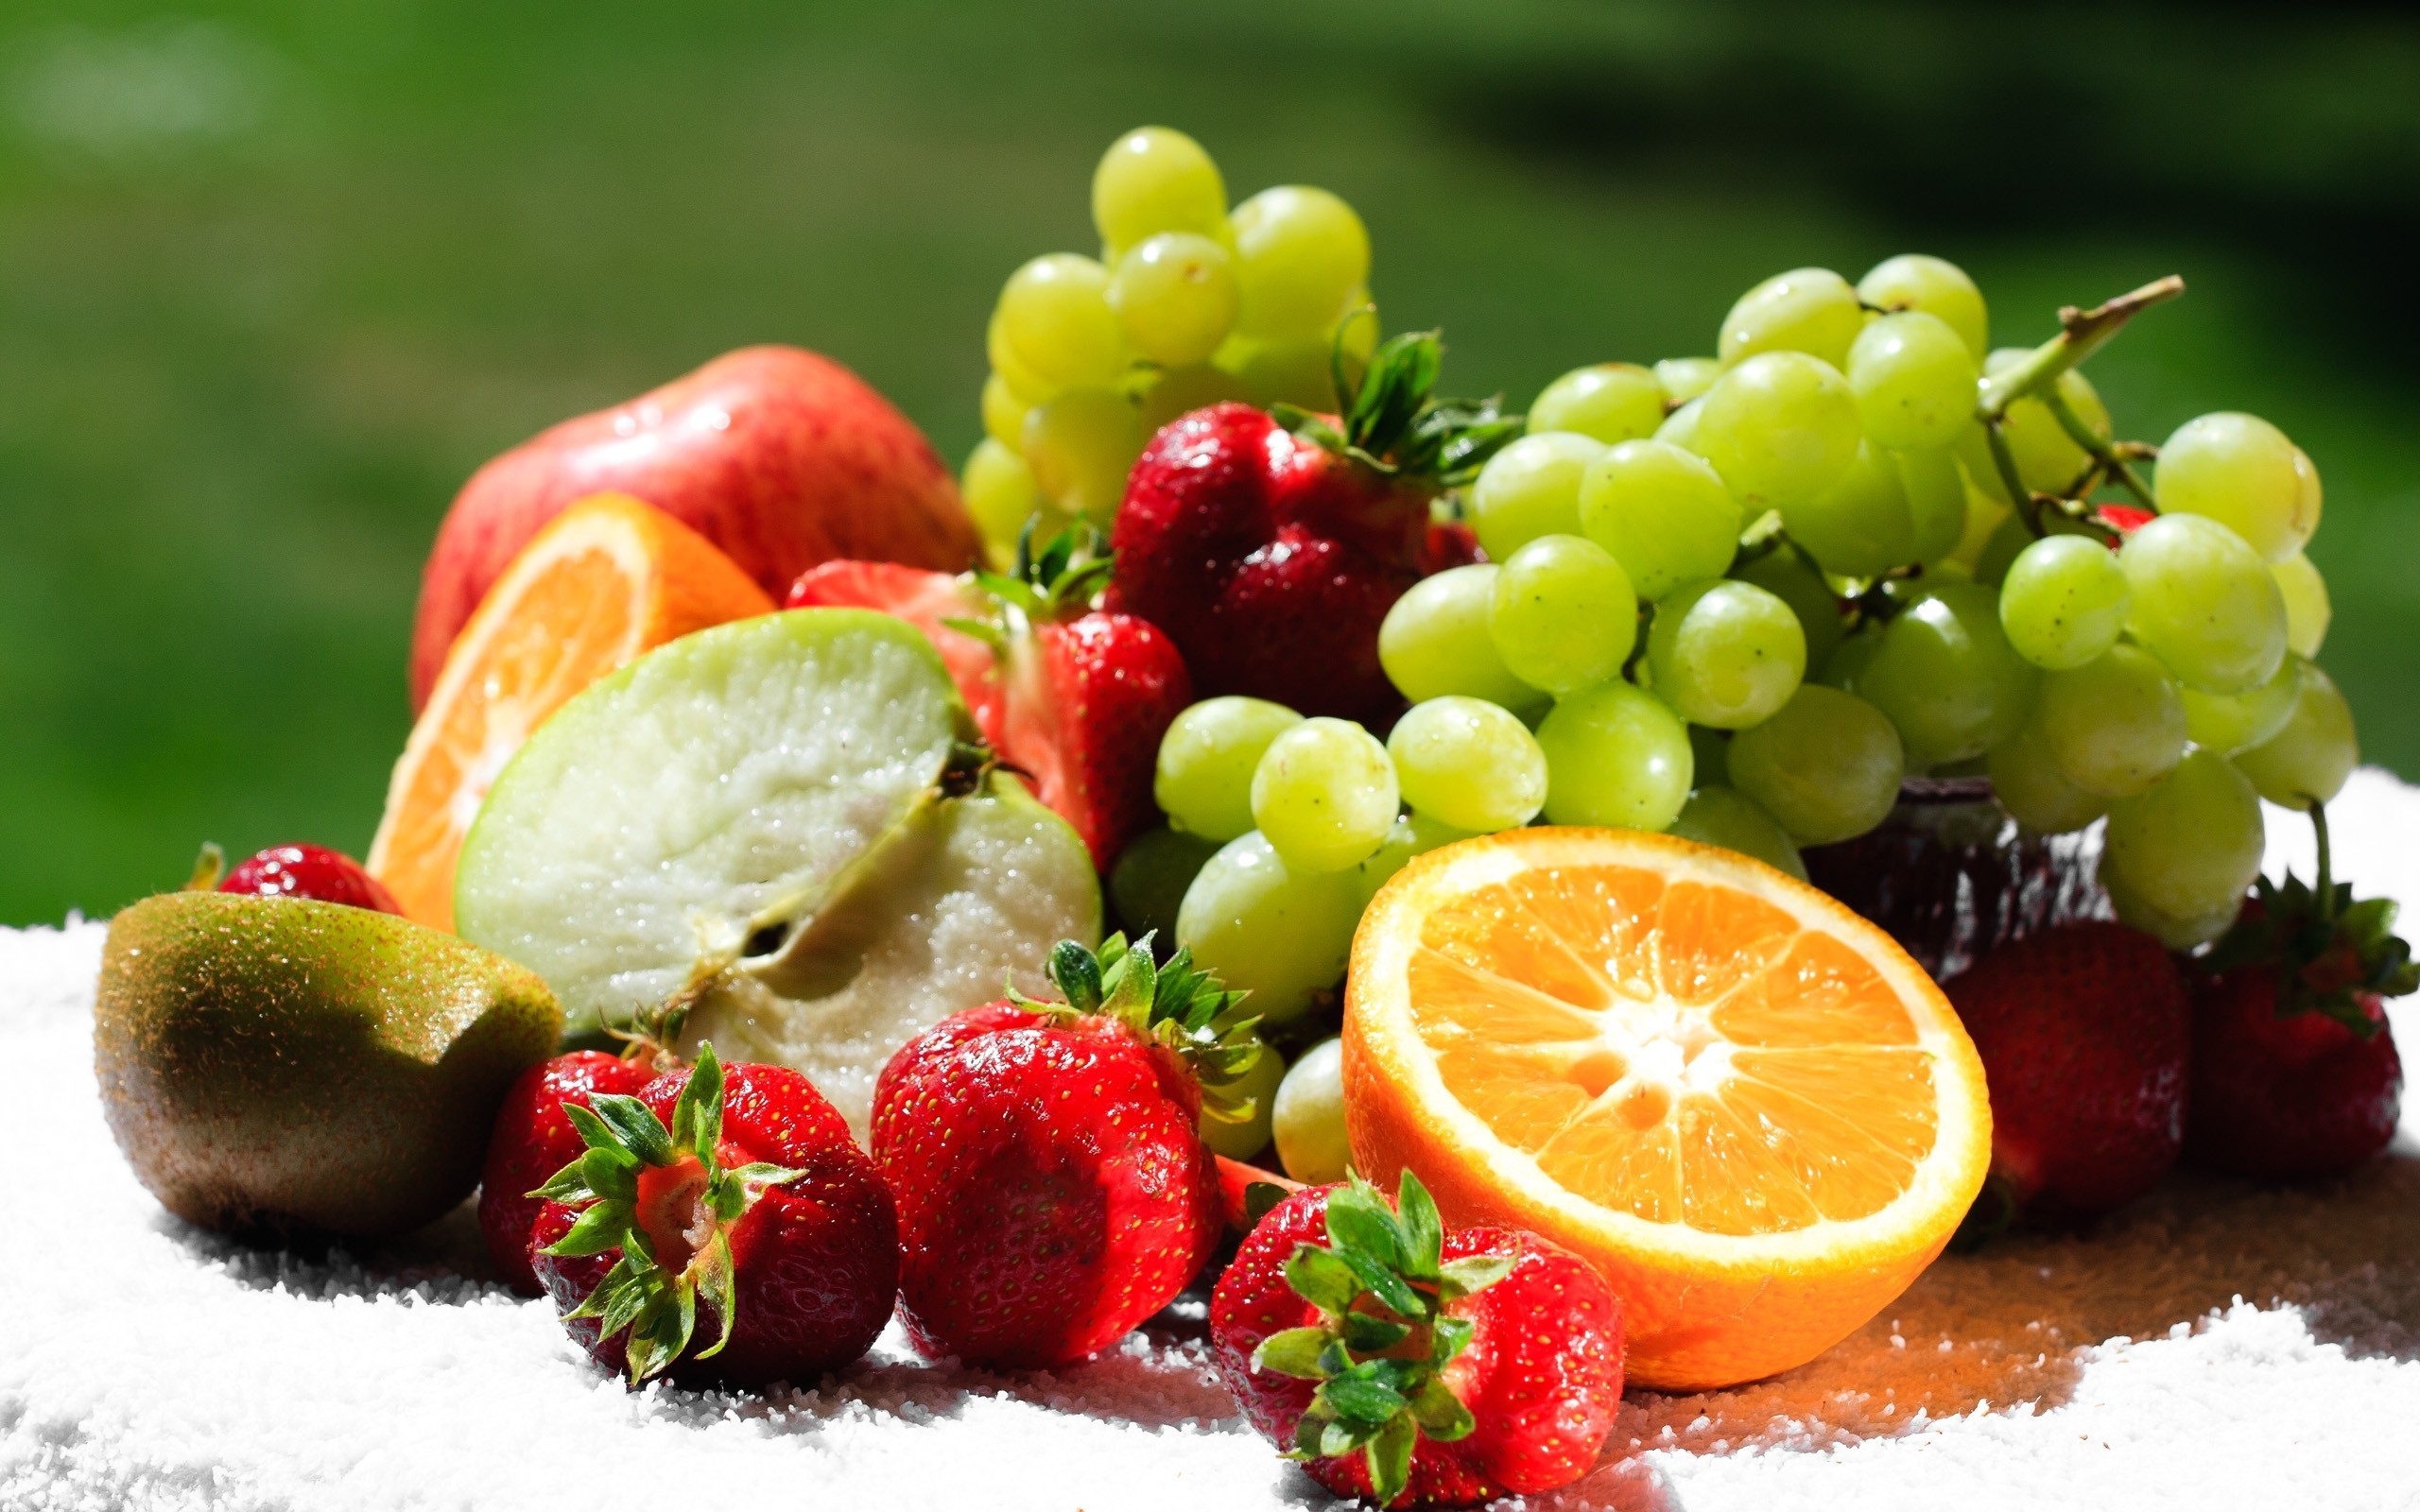 Free fruit platter wallpaper background